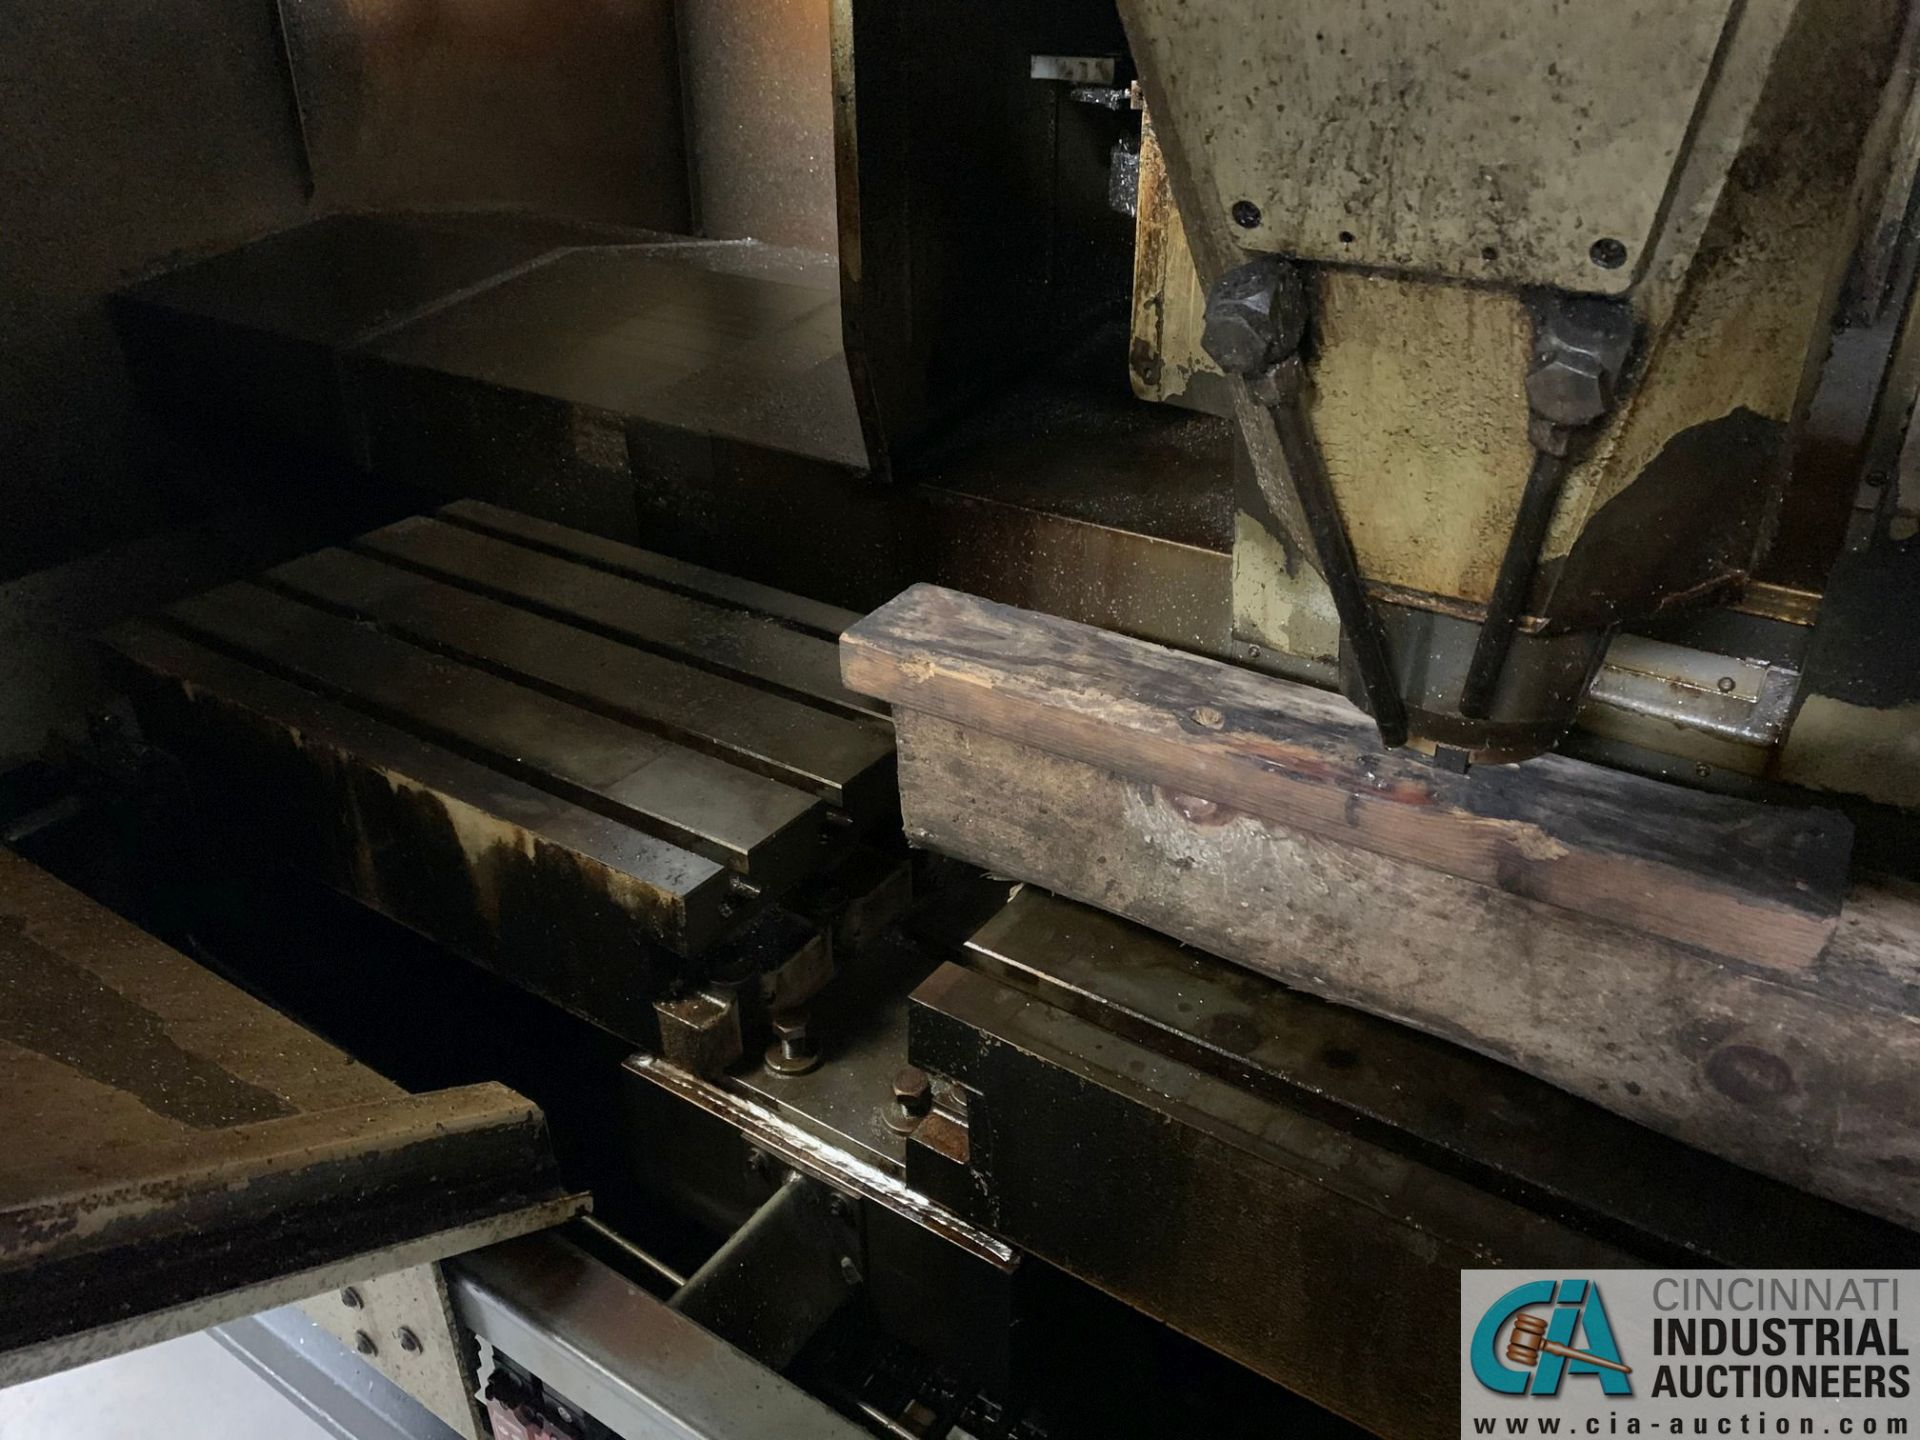 MONARCH UNISIGN TYPE UNIVERS 4 ZONALL 4 CNC VERTICAL MACHINING CENTER; S/N 99Z402, NO. 4292, - Image 3 of 11